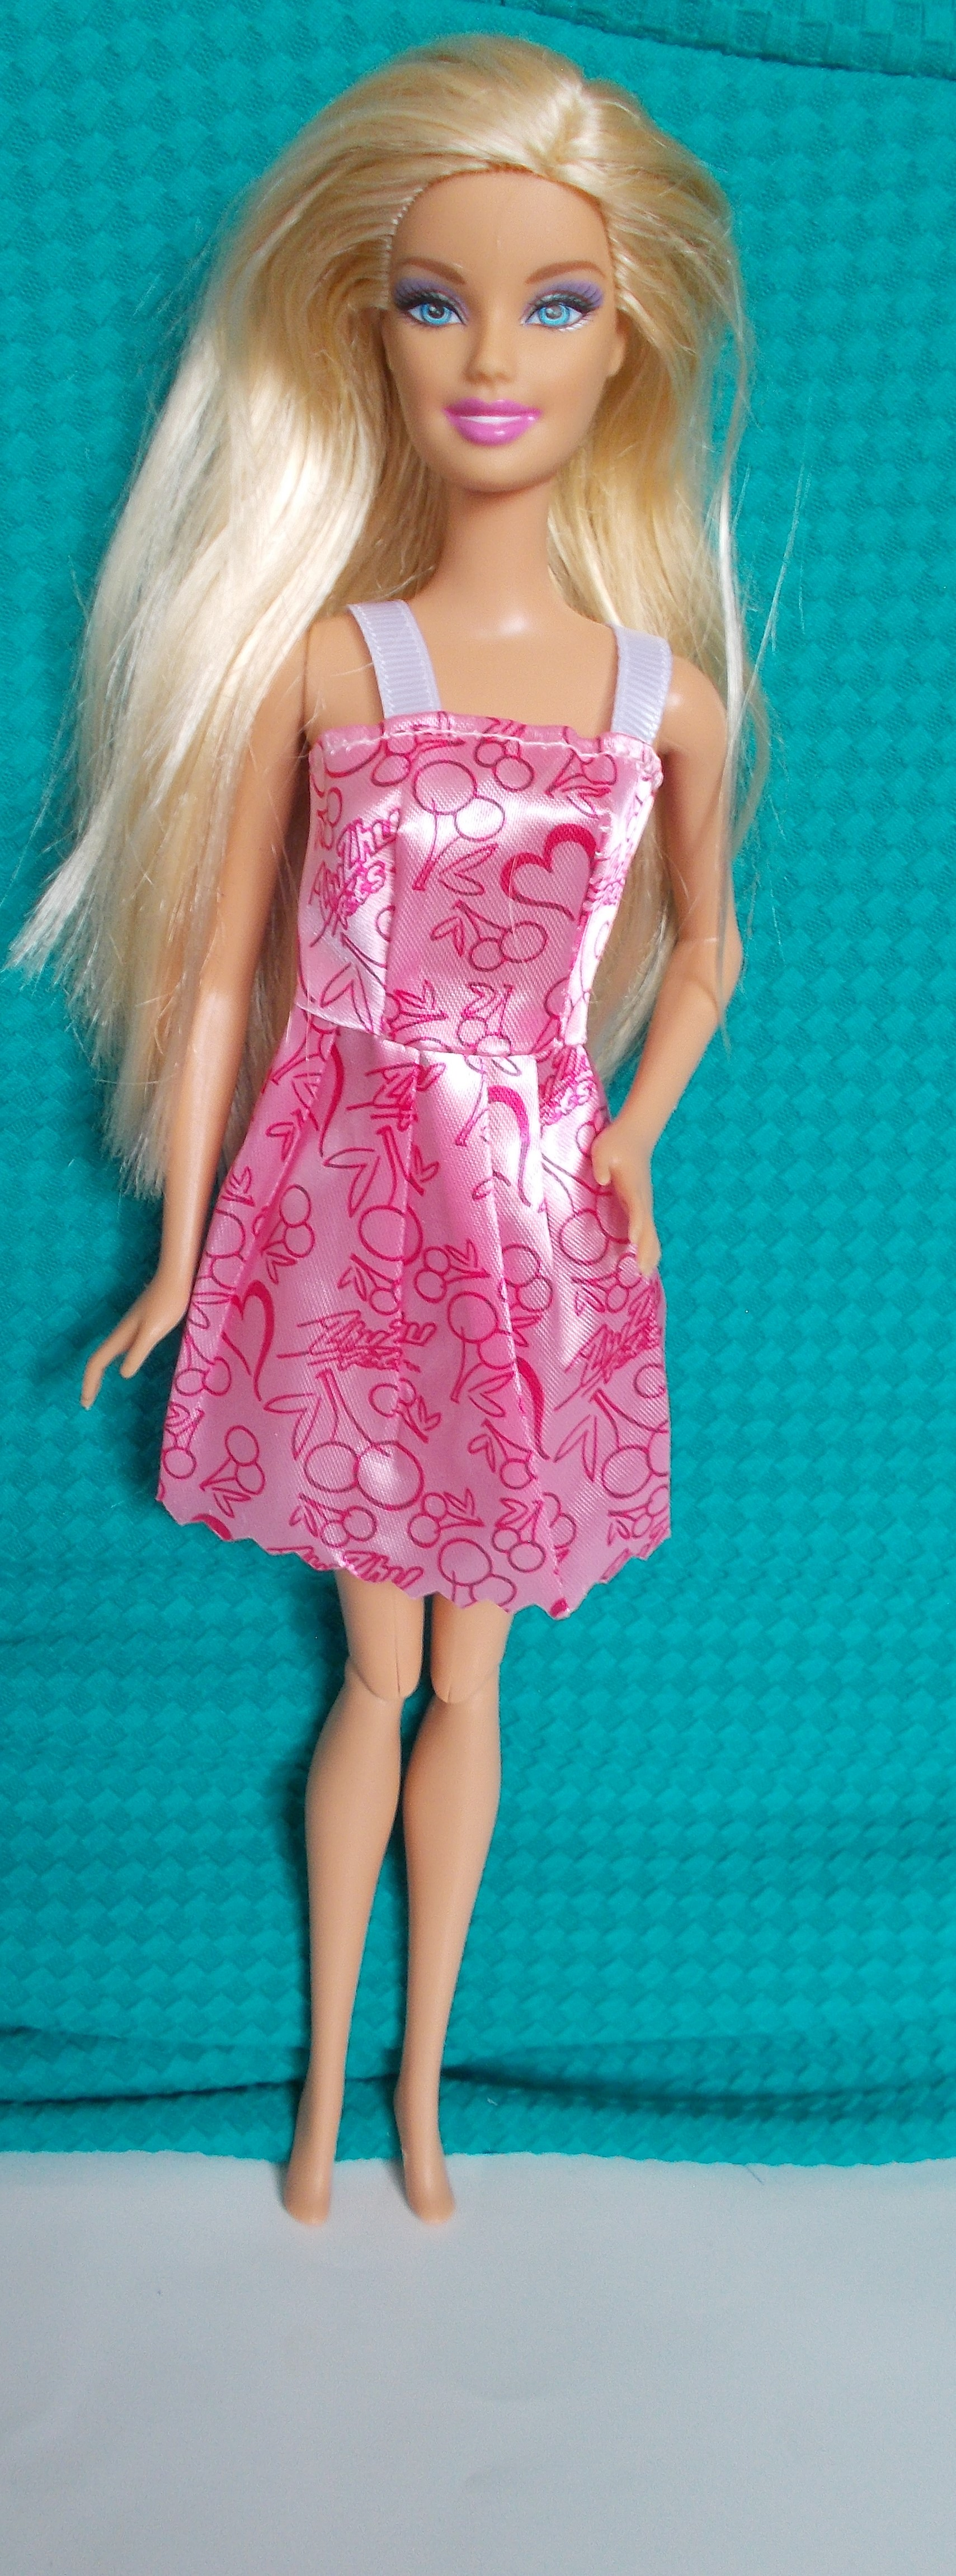 Blond Barbie